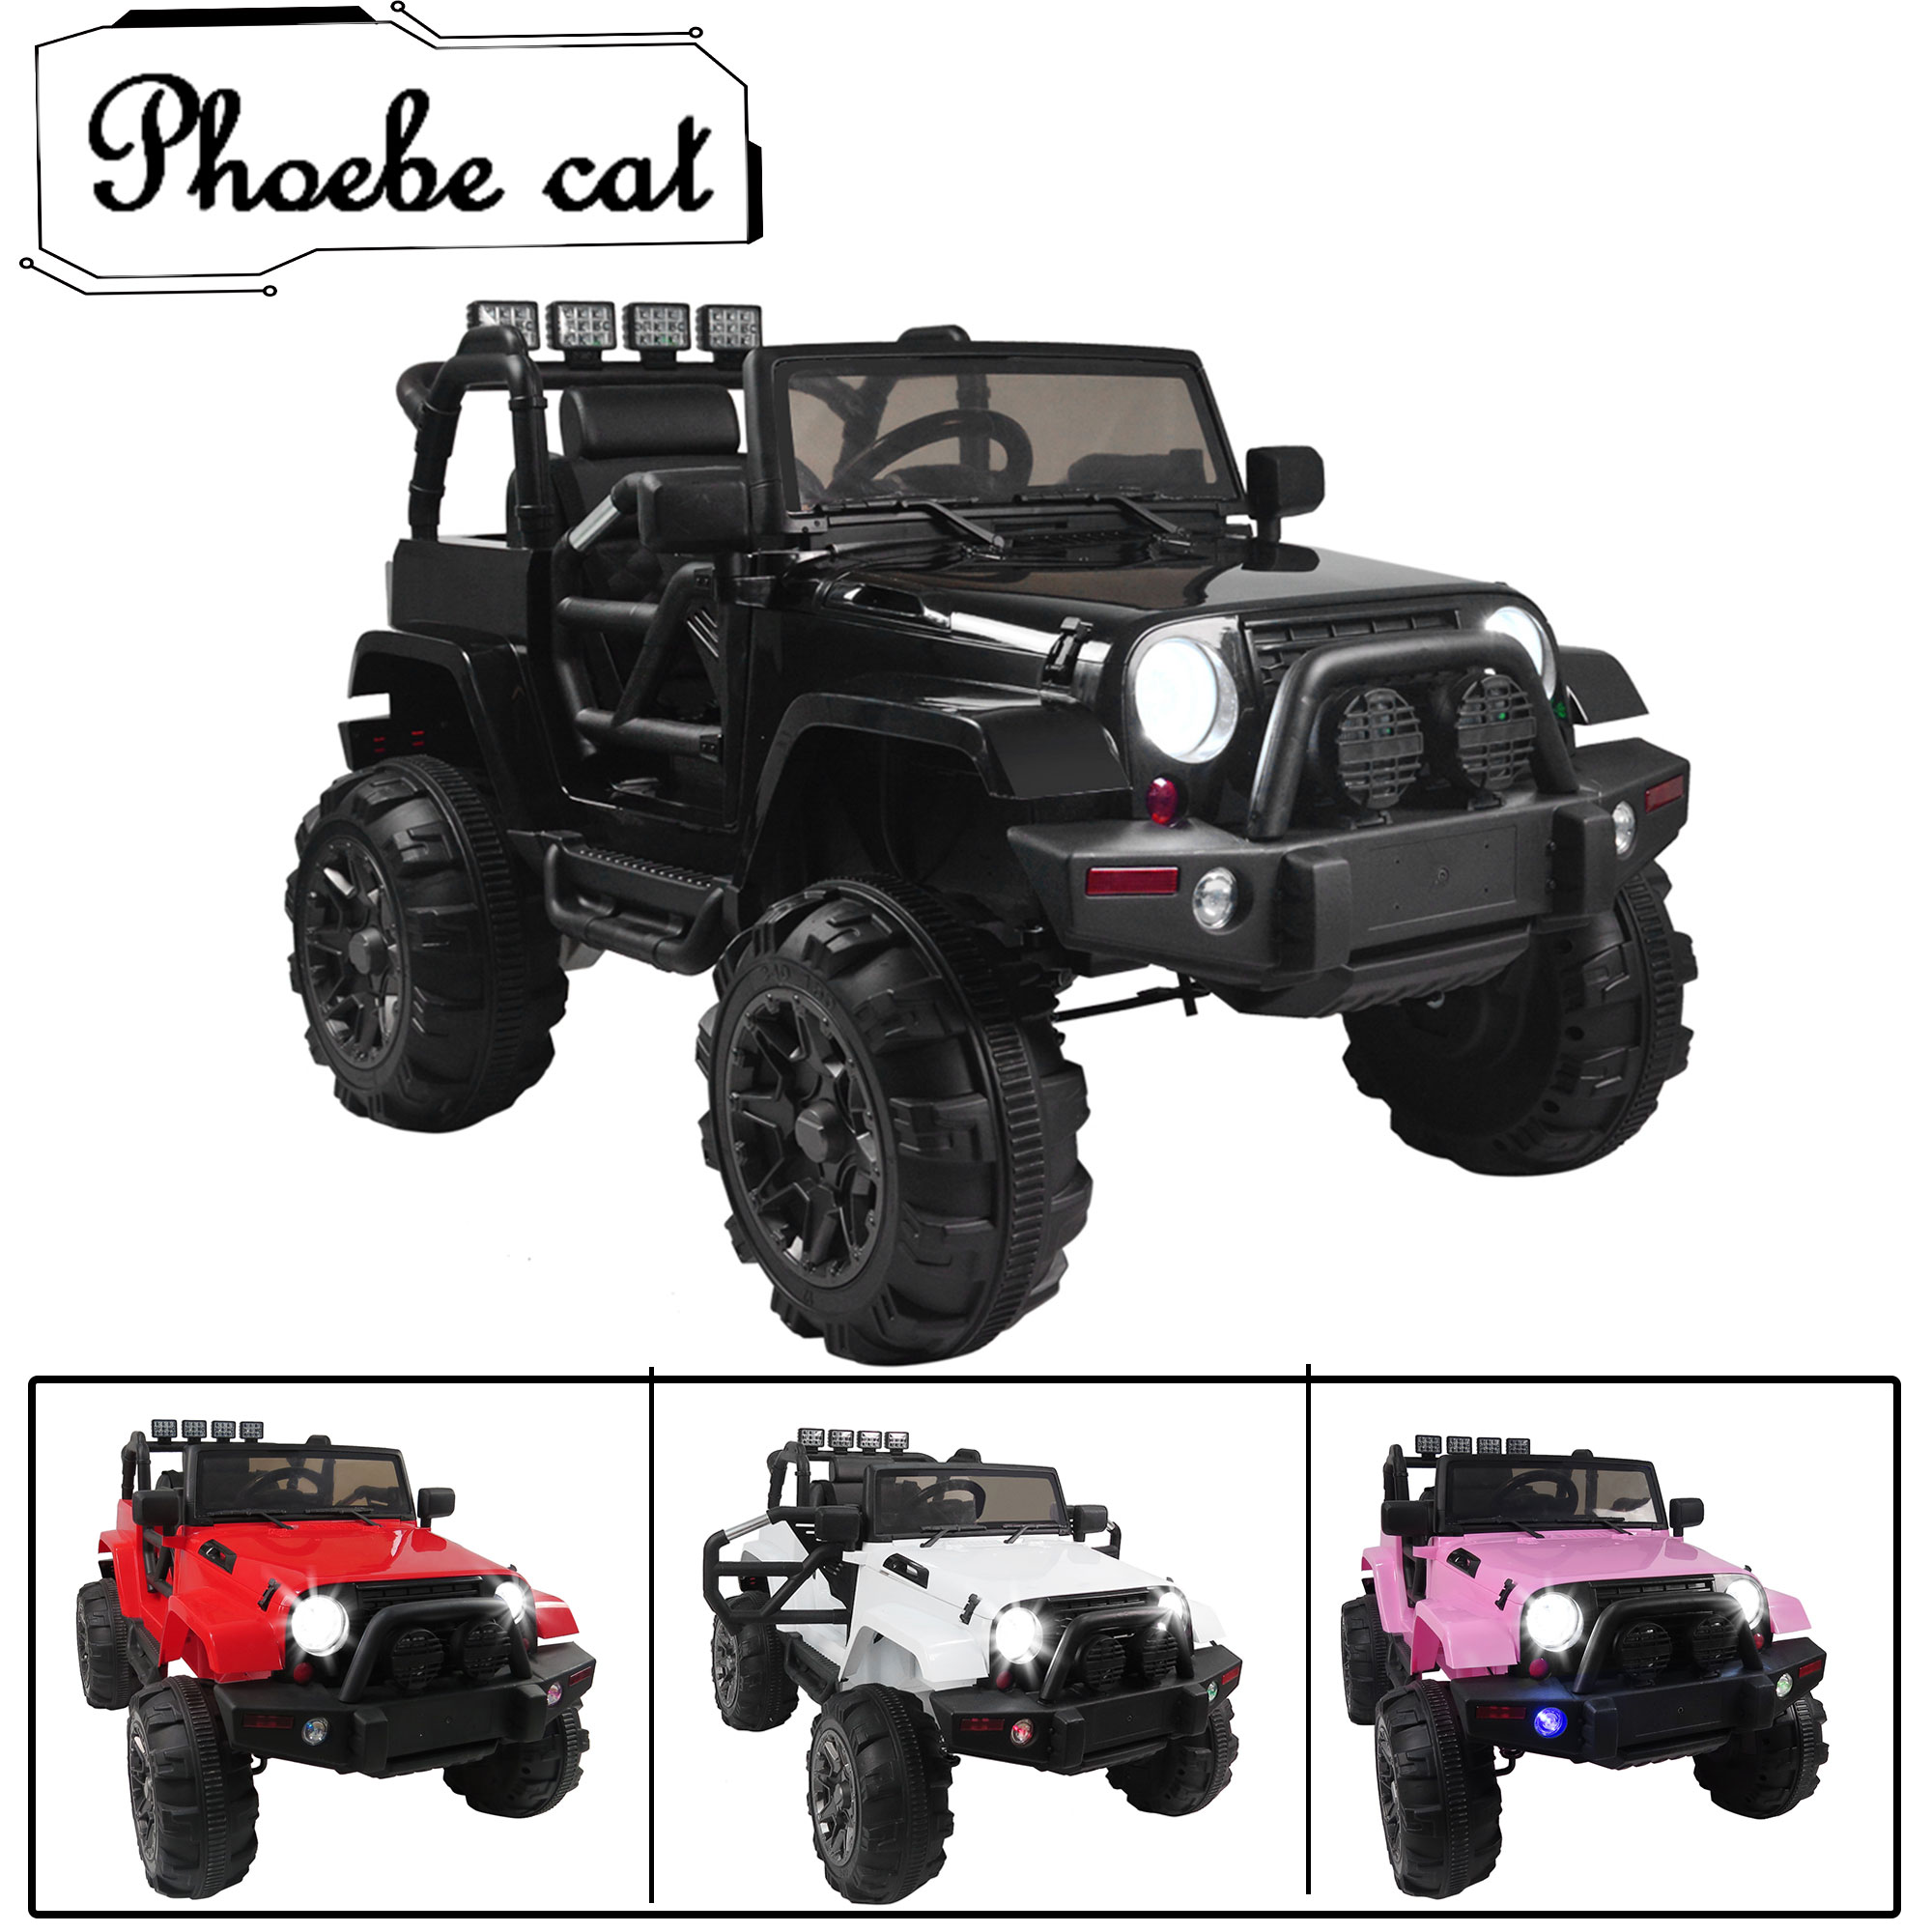 Electric Cars for Boys, Black Electric Cars for Kids to Ride, Ride On Jeep Car for Children Child, 12V Kids... by